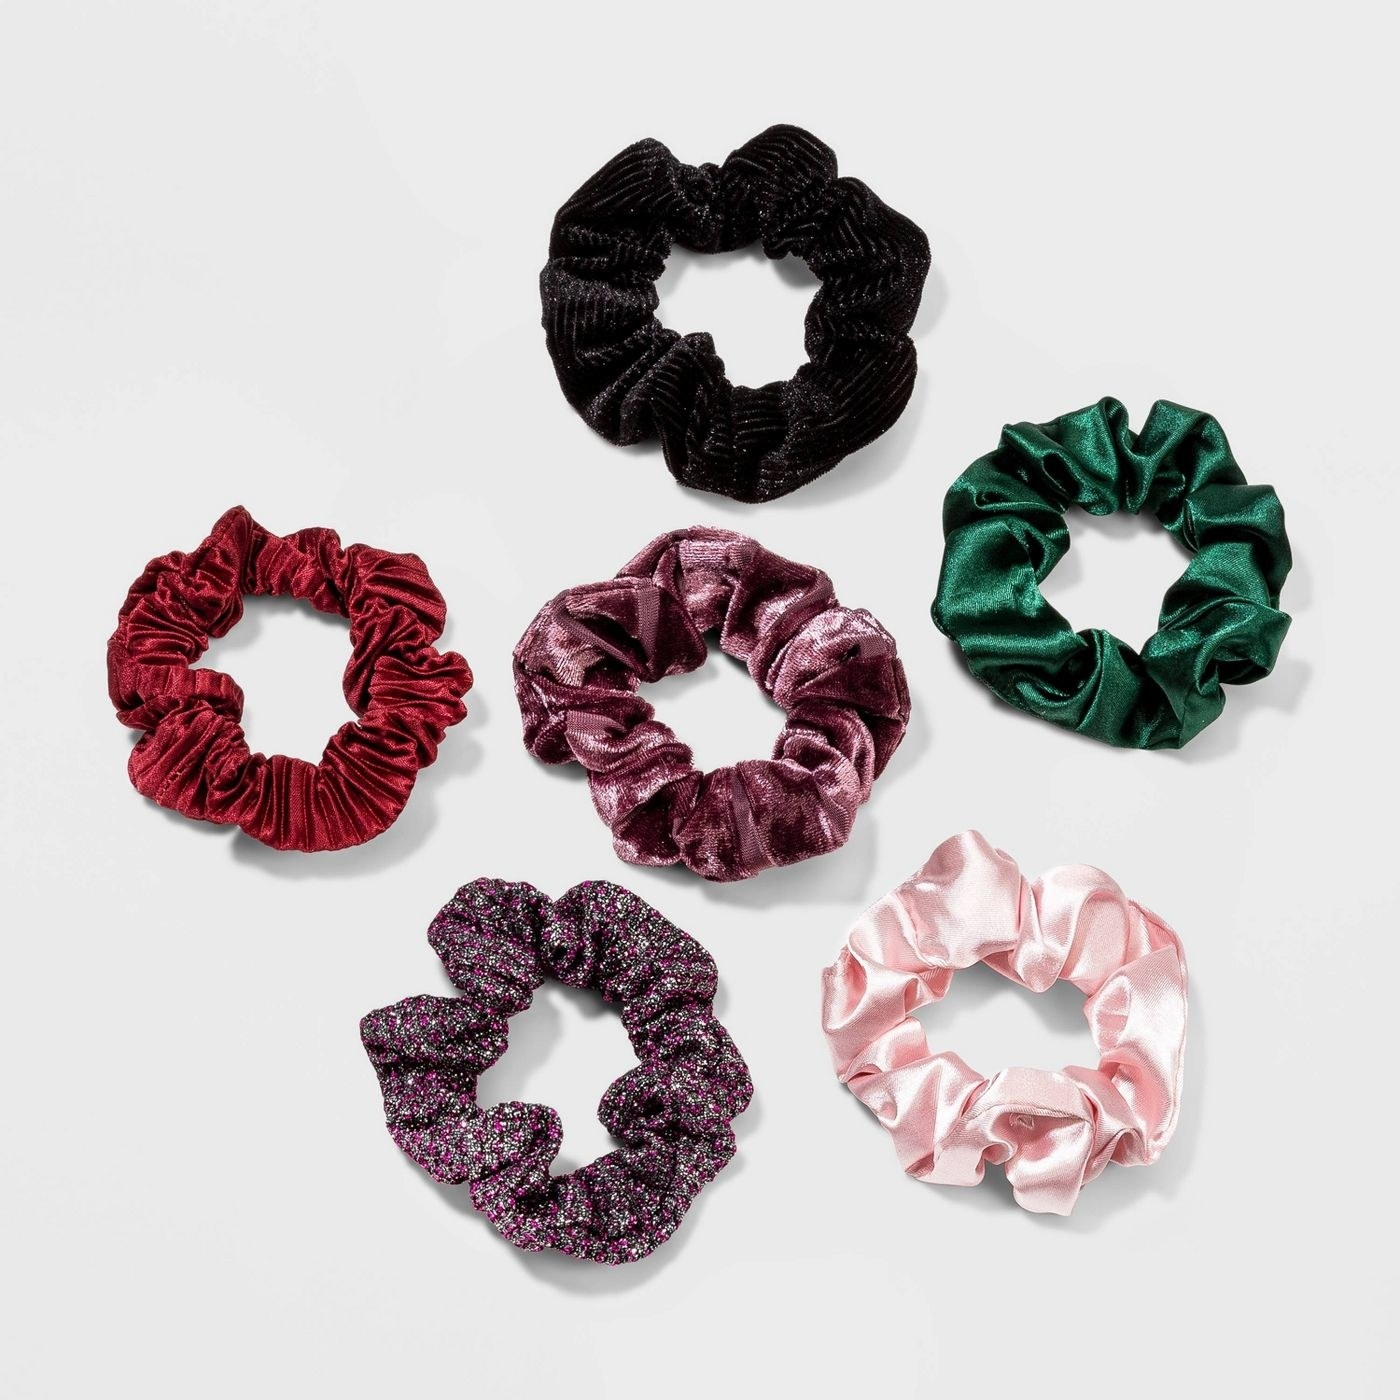 Six scrunchies, in a variety of colors and fabric textures, including silky and velvety